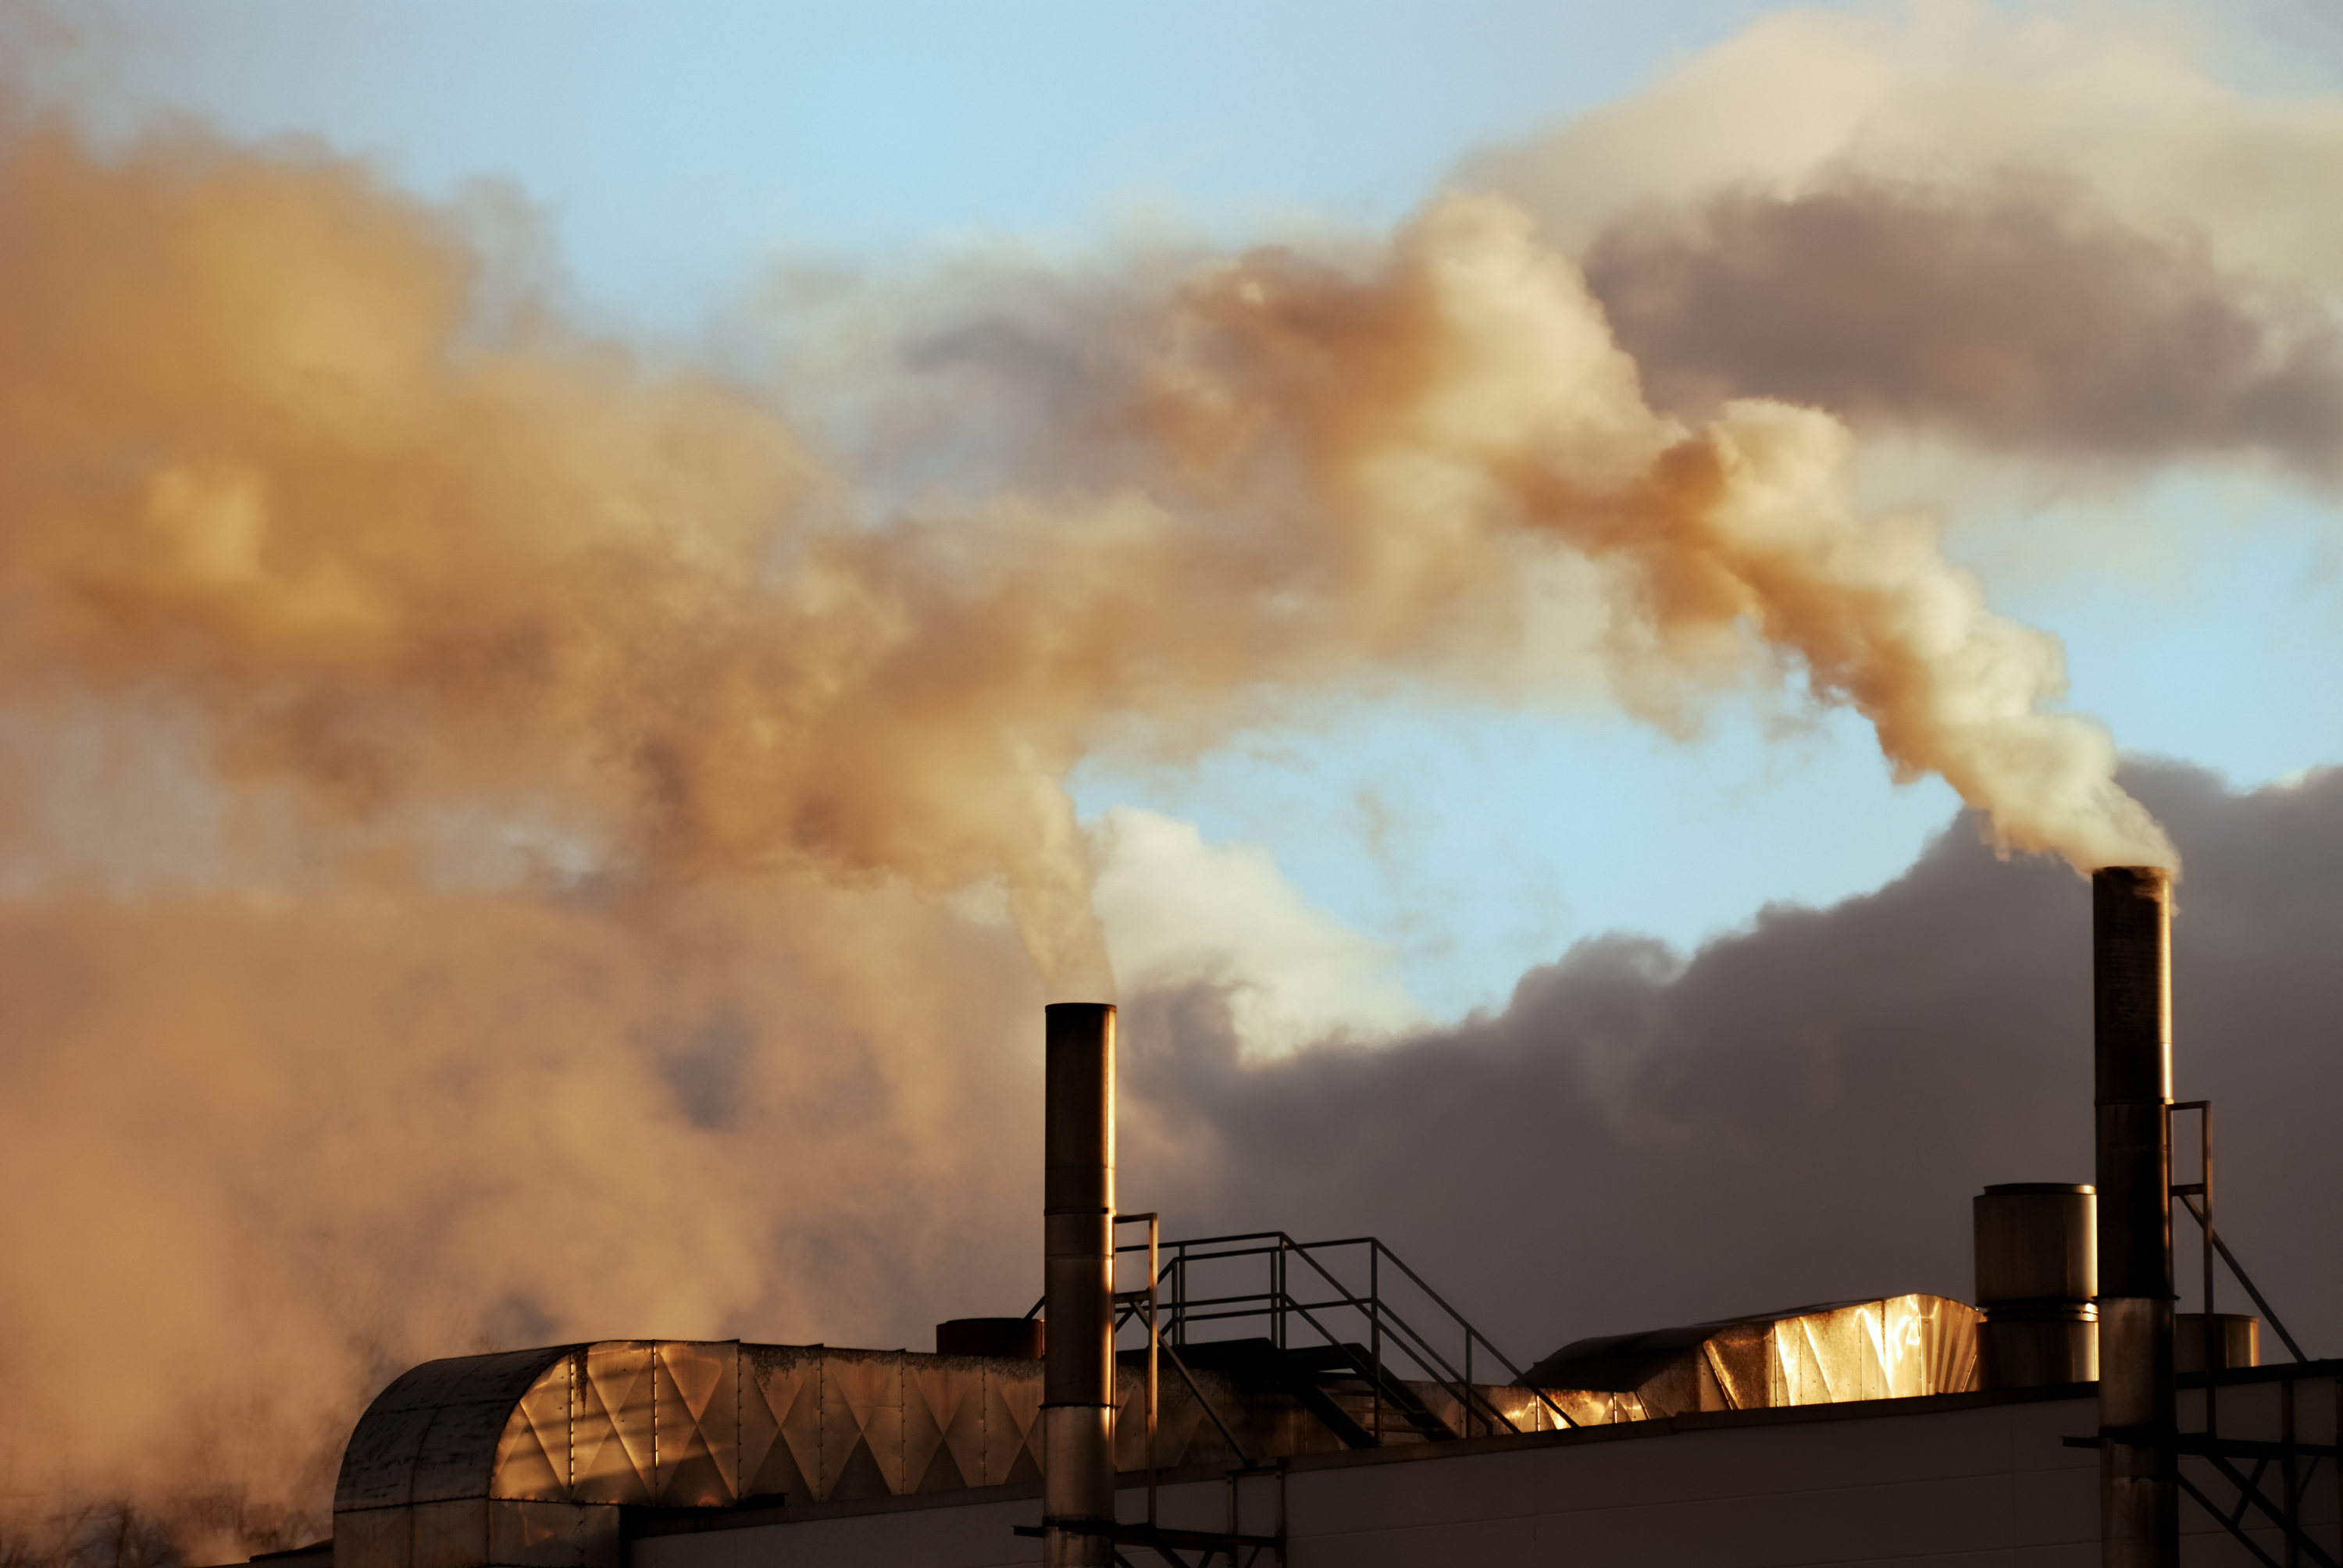 Big Polluters Cry Wolf Over Epa Plan To Protect Health And